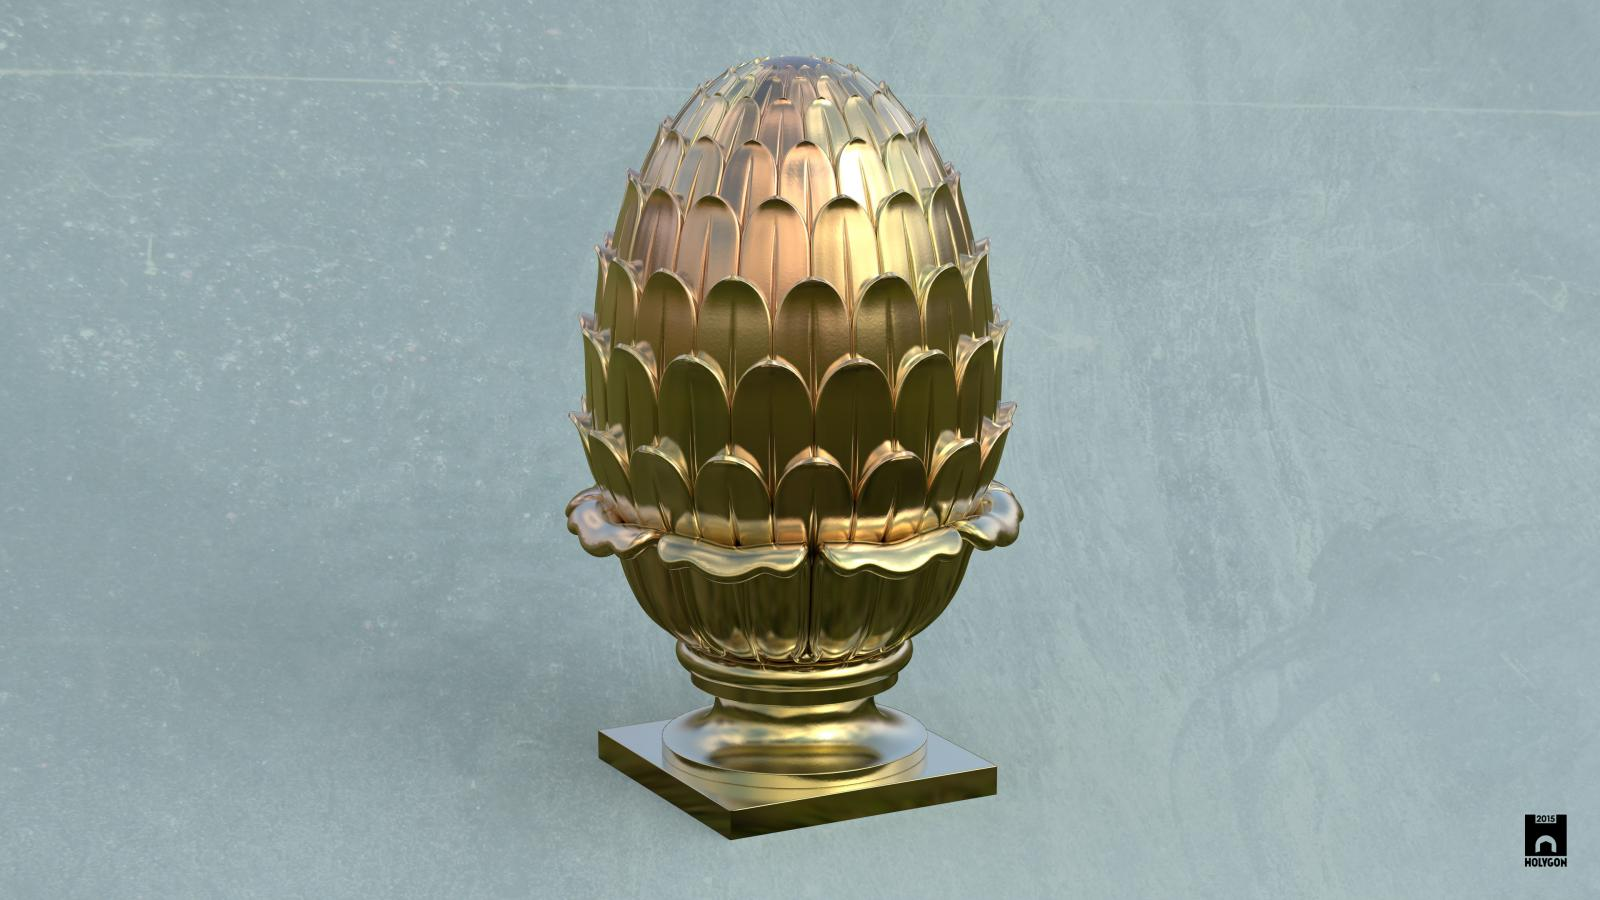 A 3D render of a gold artichoke finial.